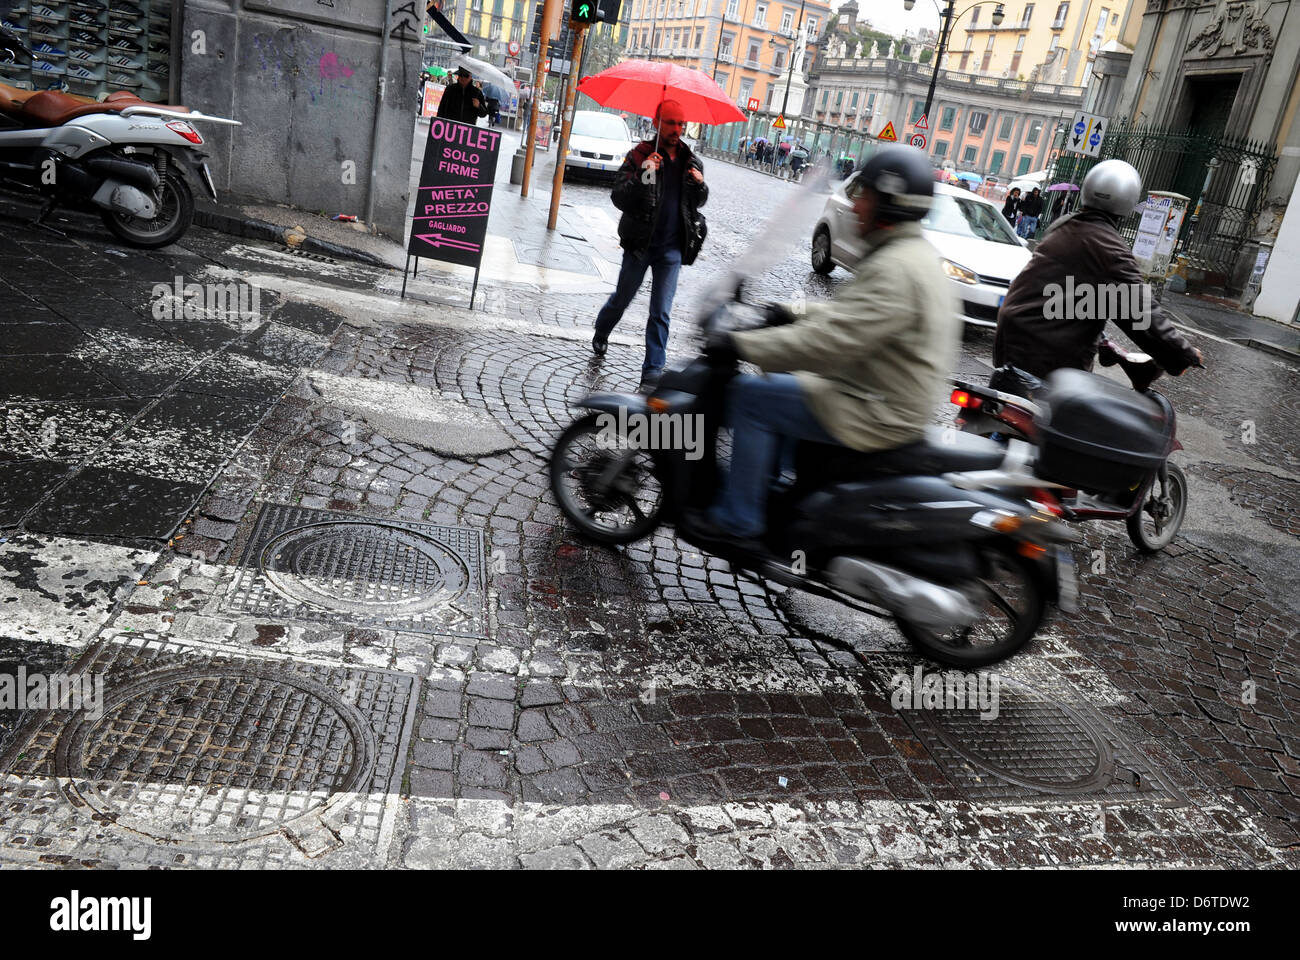 Scooter riders in Naples, Italy. Picture by Paul Heyes, Saturday March 30, 2013. - Stock Image